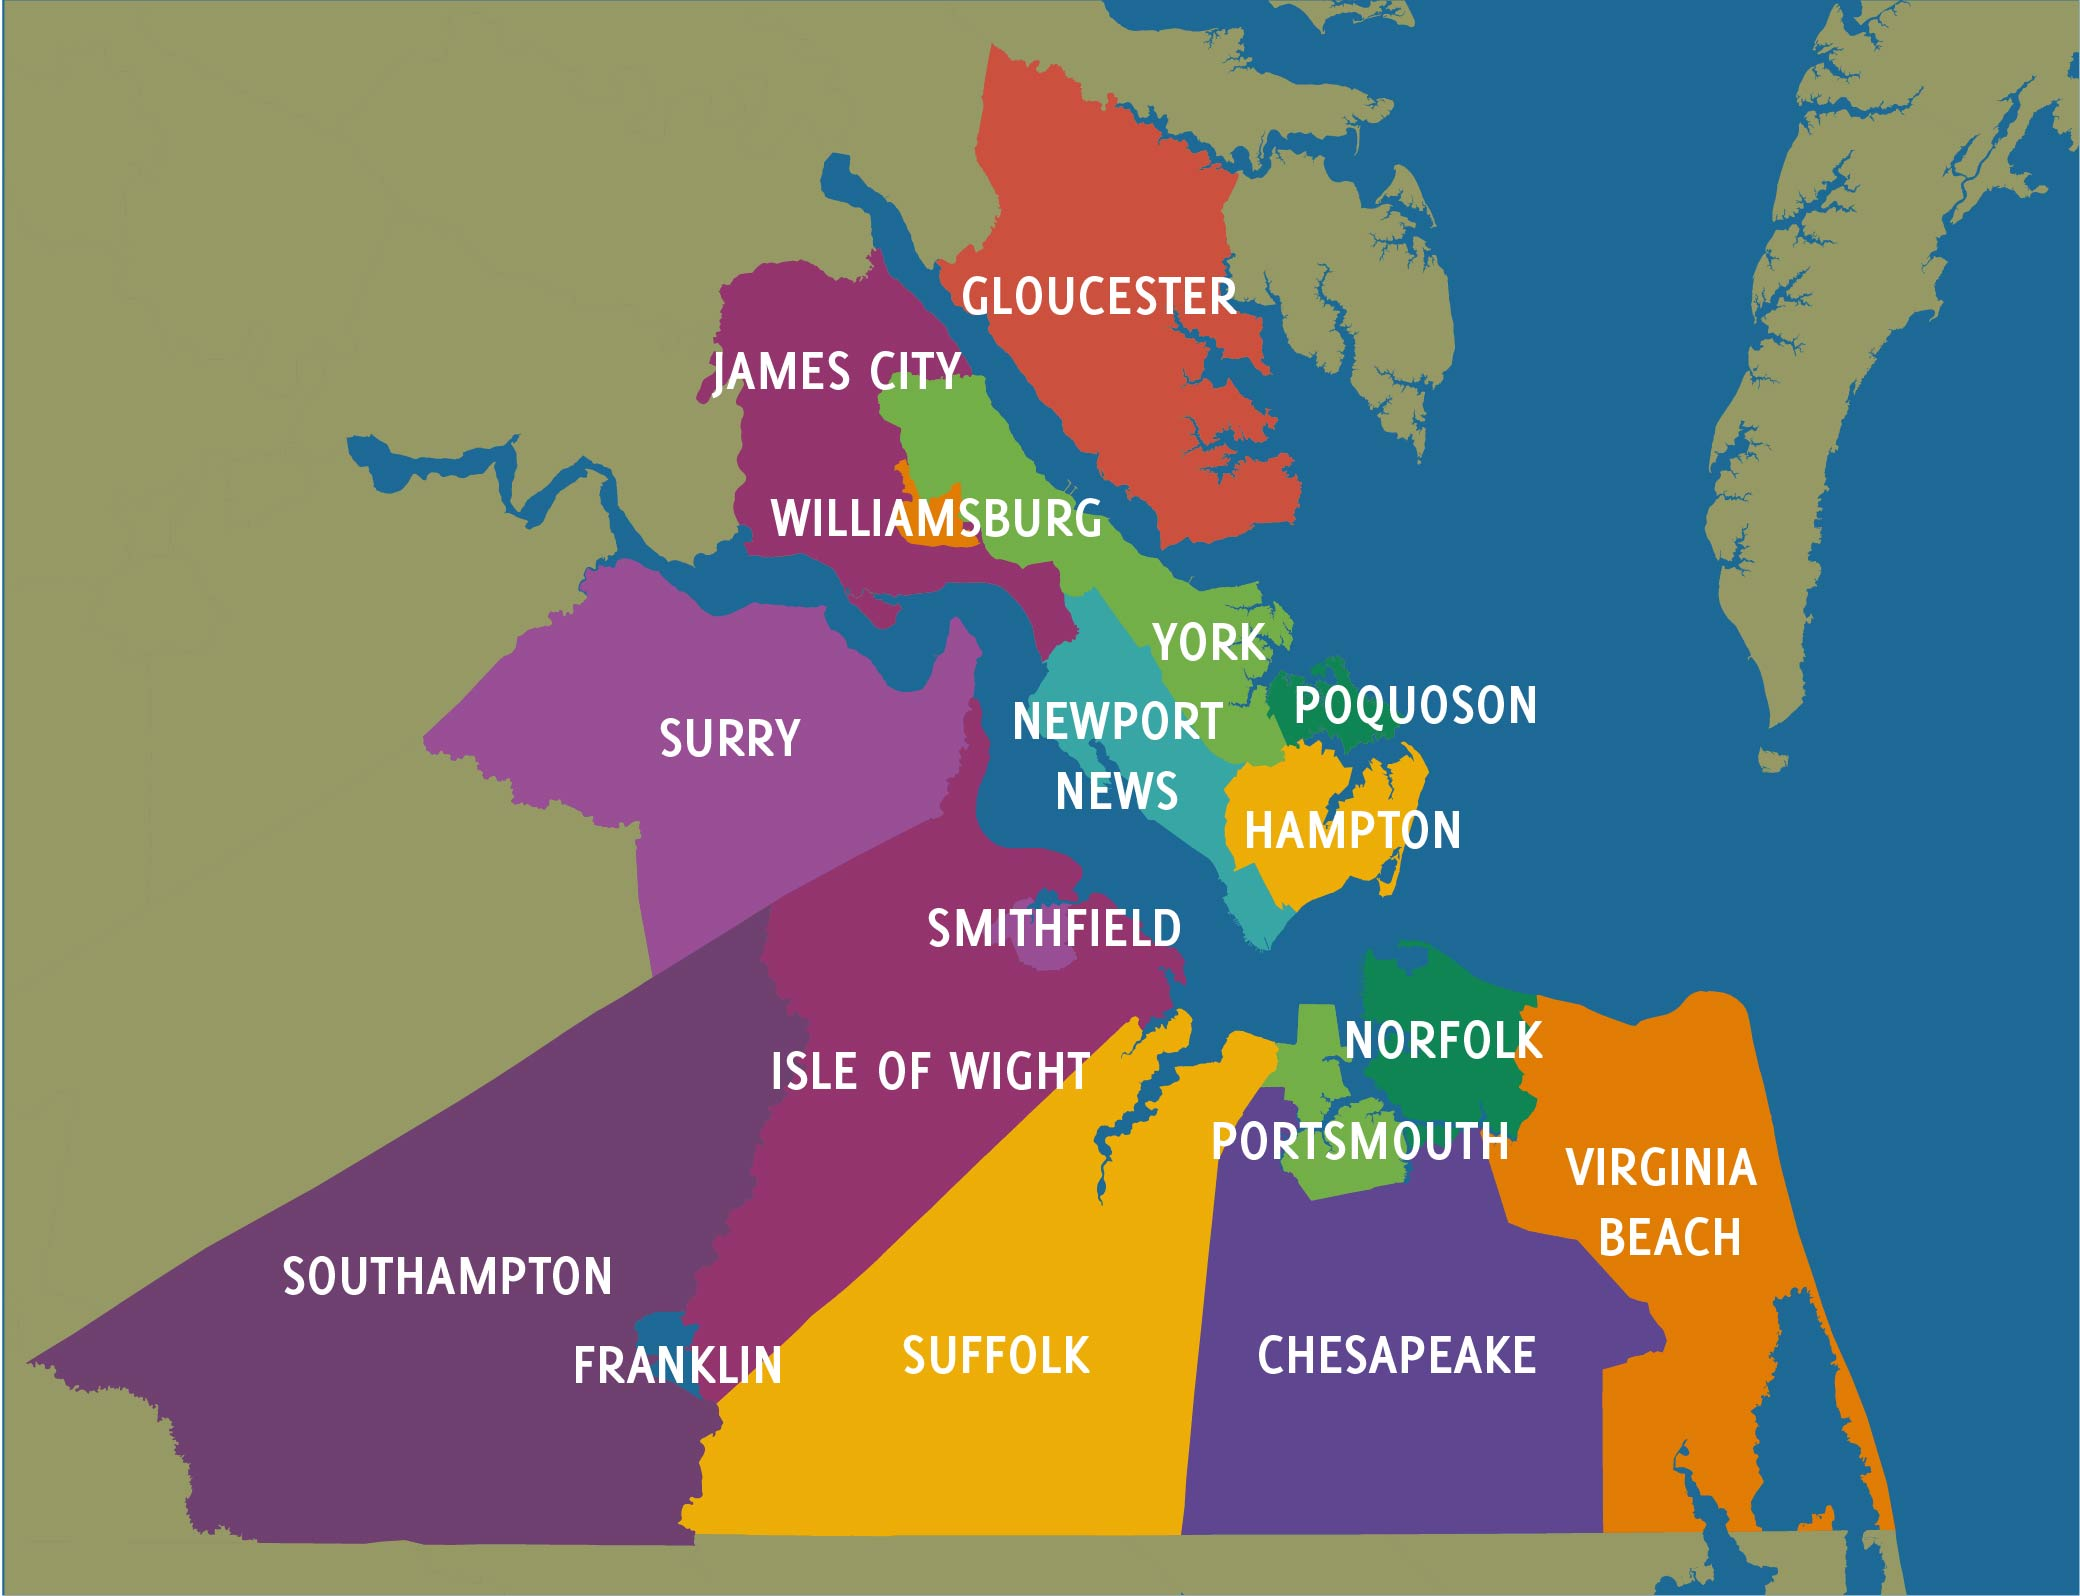 The 17 jurisdictions in our region.